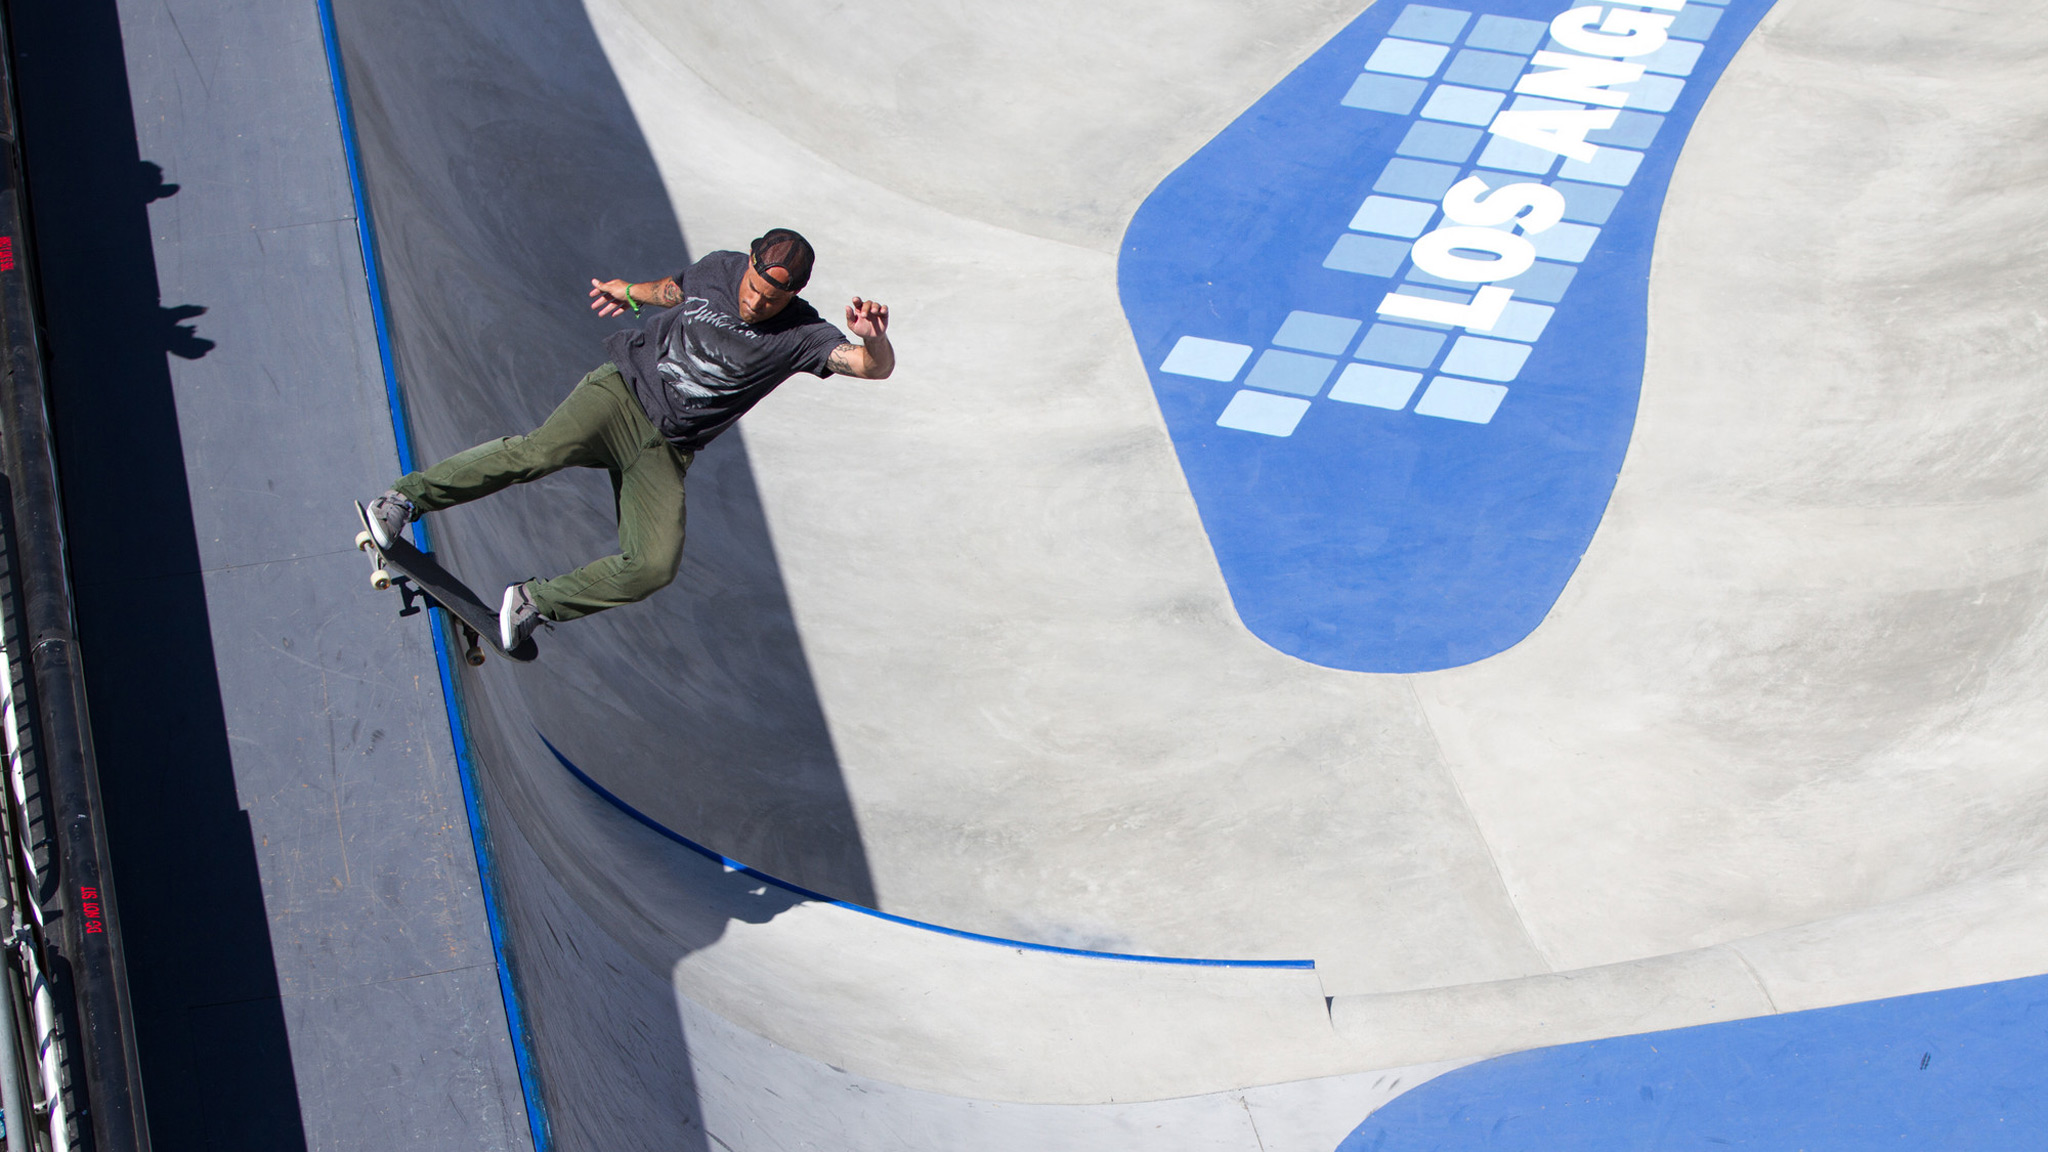 Omar Hassan lipslides the flat wall in Skateboard Park during X Games Los Angeles 2012. California Ramp Works built the Park and Street courses and the Big Air ramp.